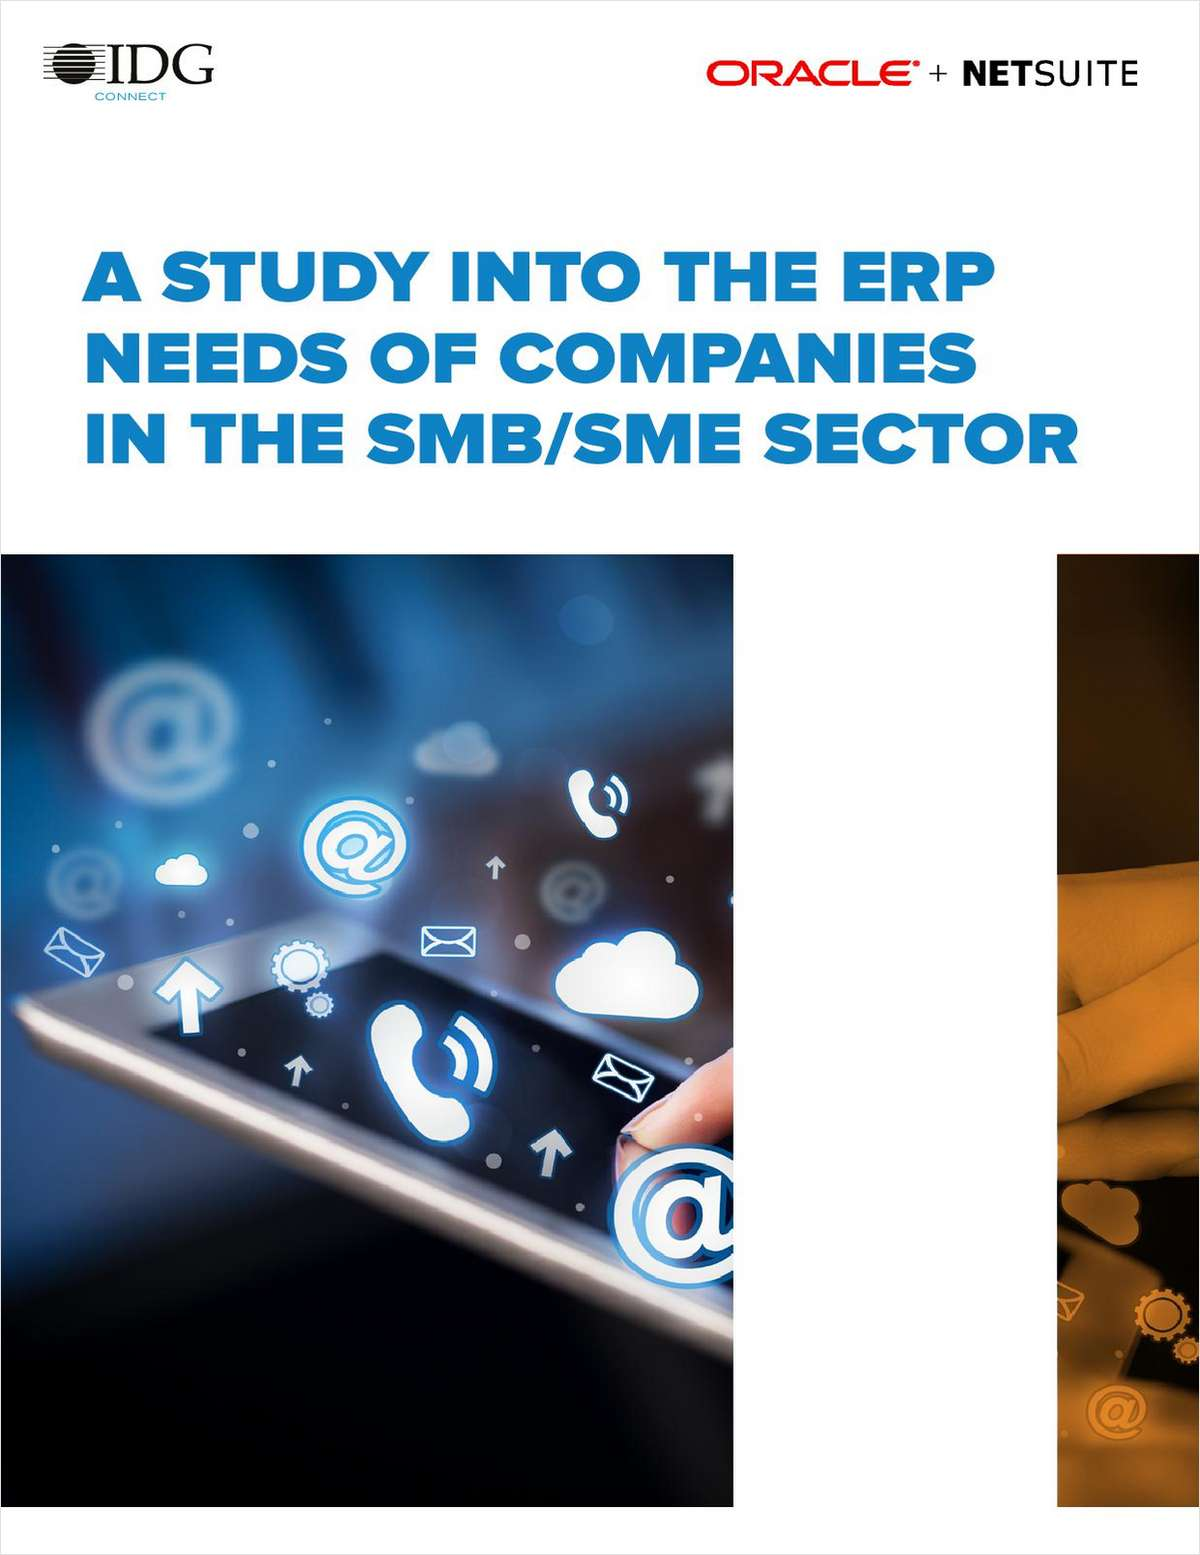 ERP Needs of Companies in the SMB/SME Sector